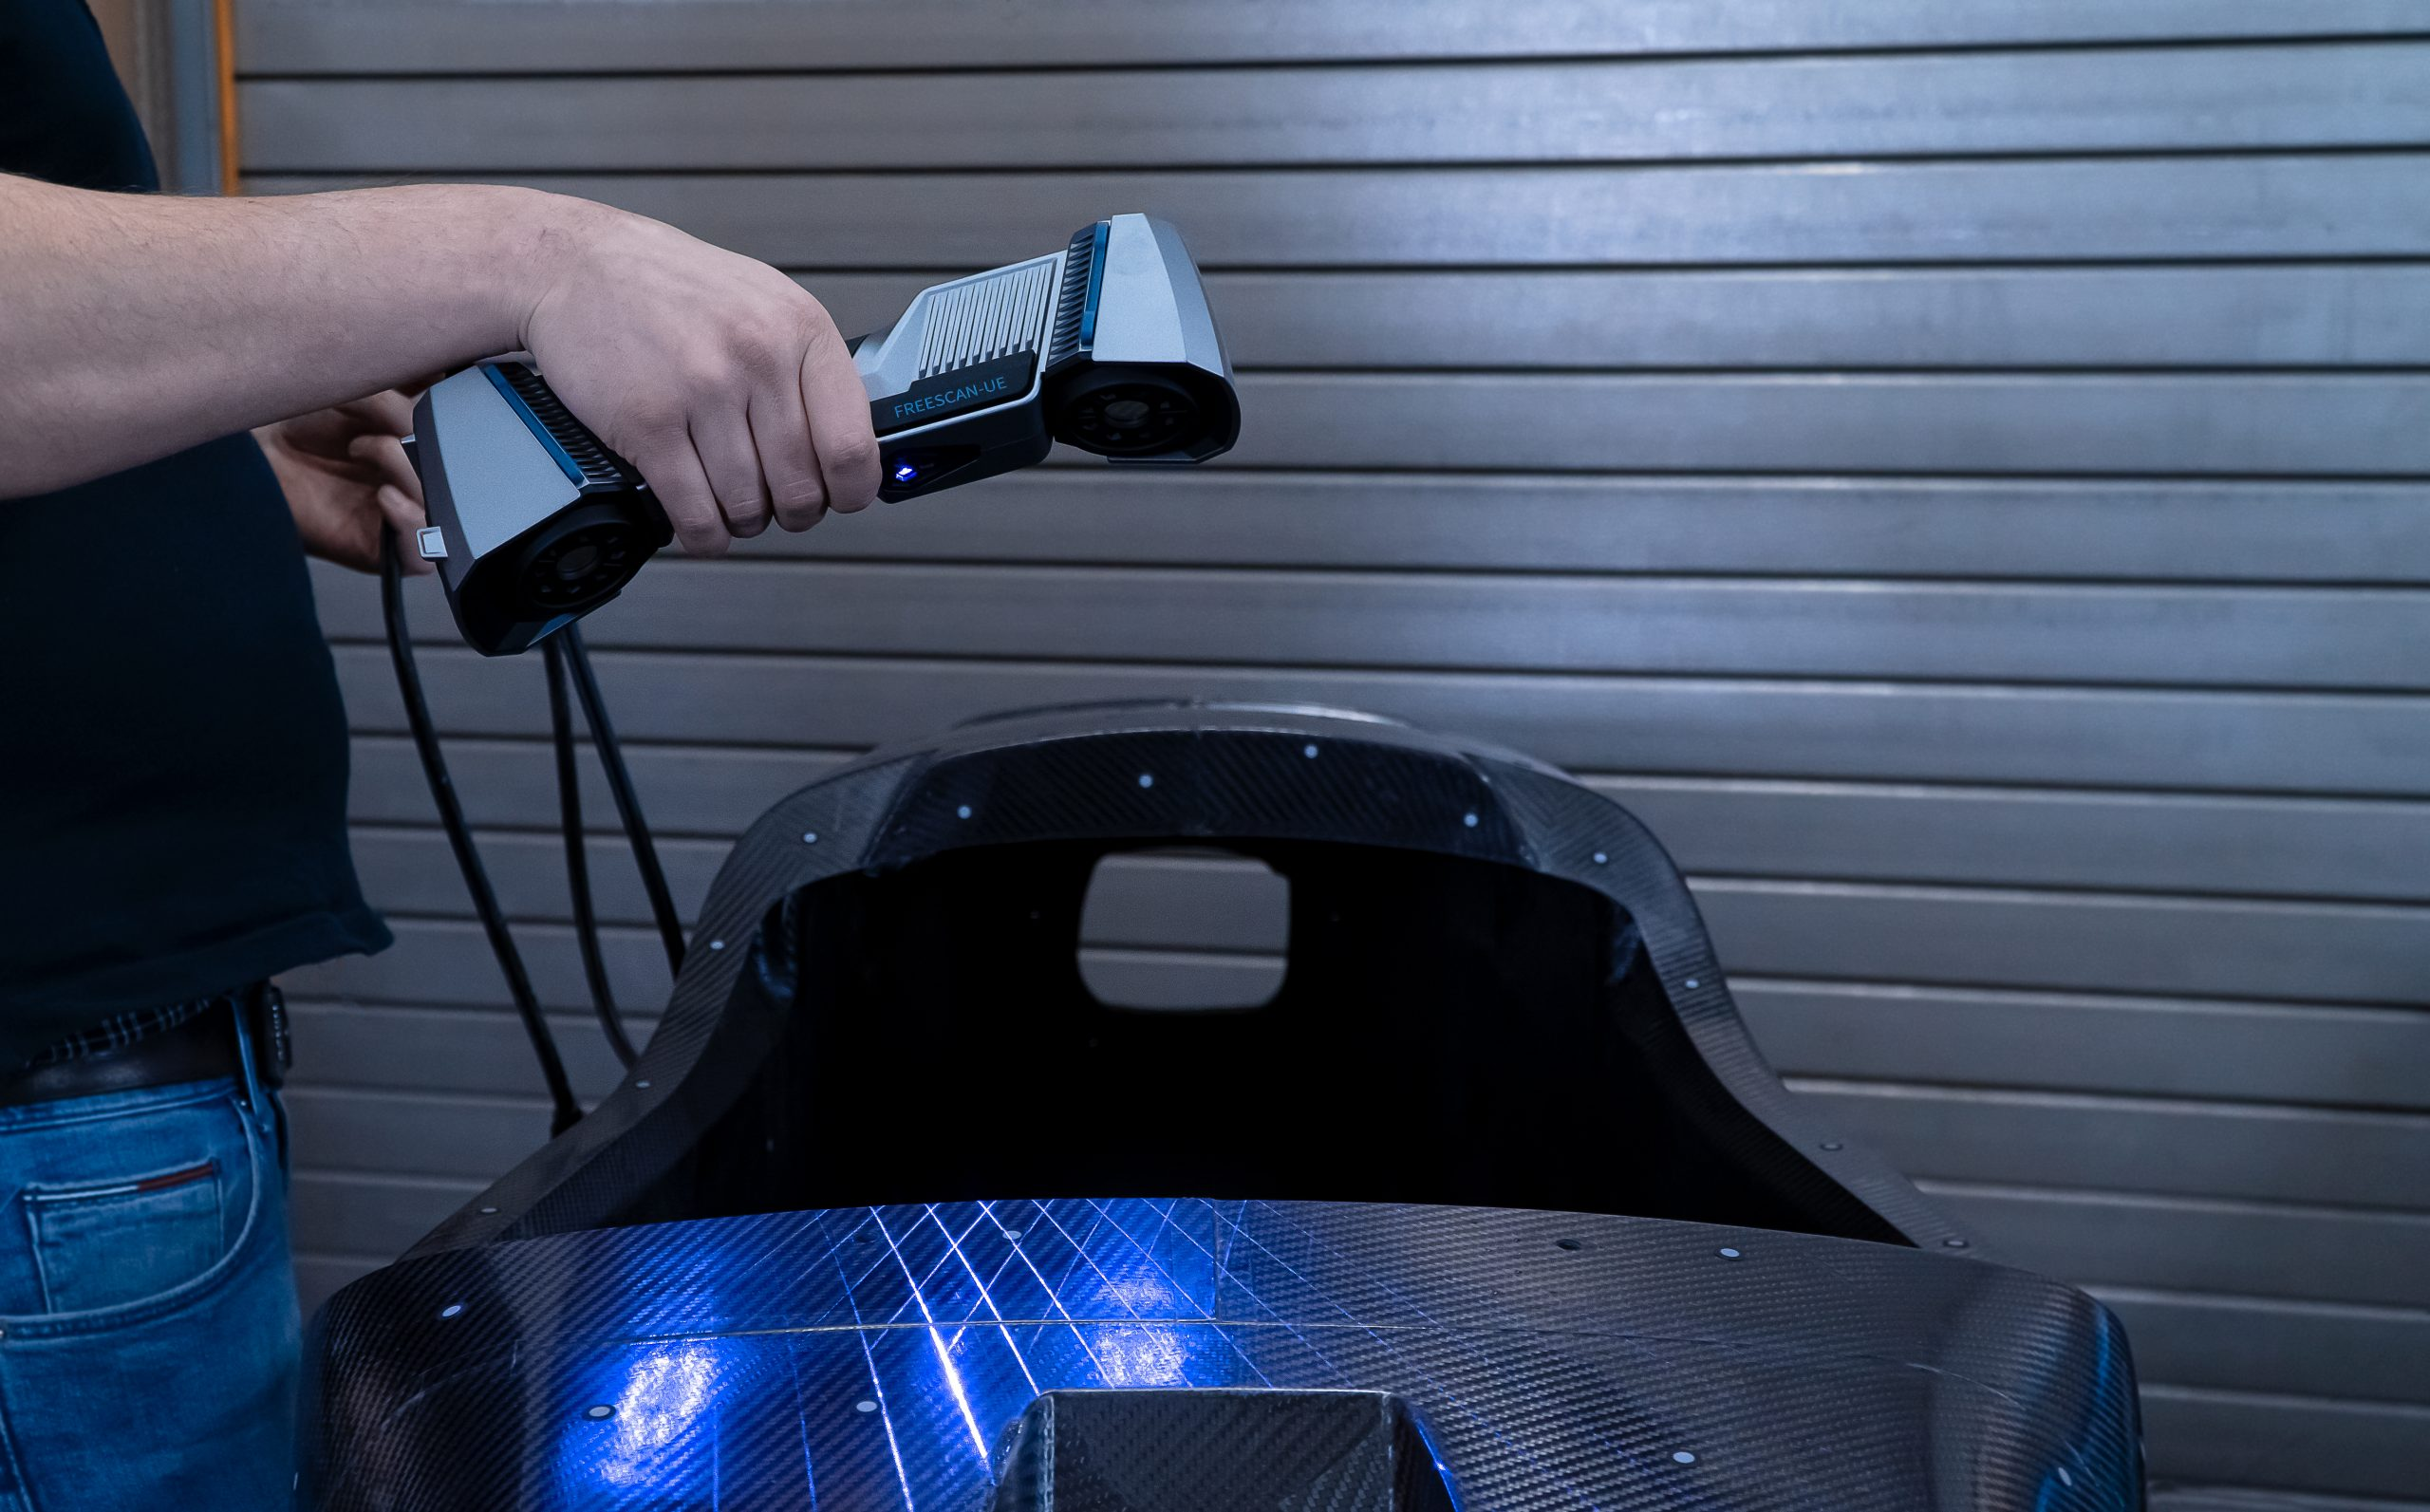 3D scanning a large part with the FreeScan UE